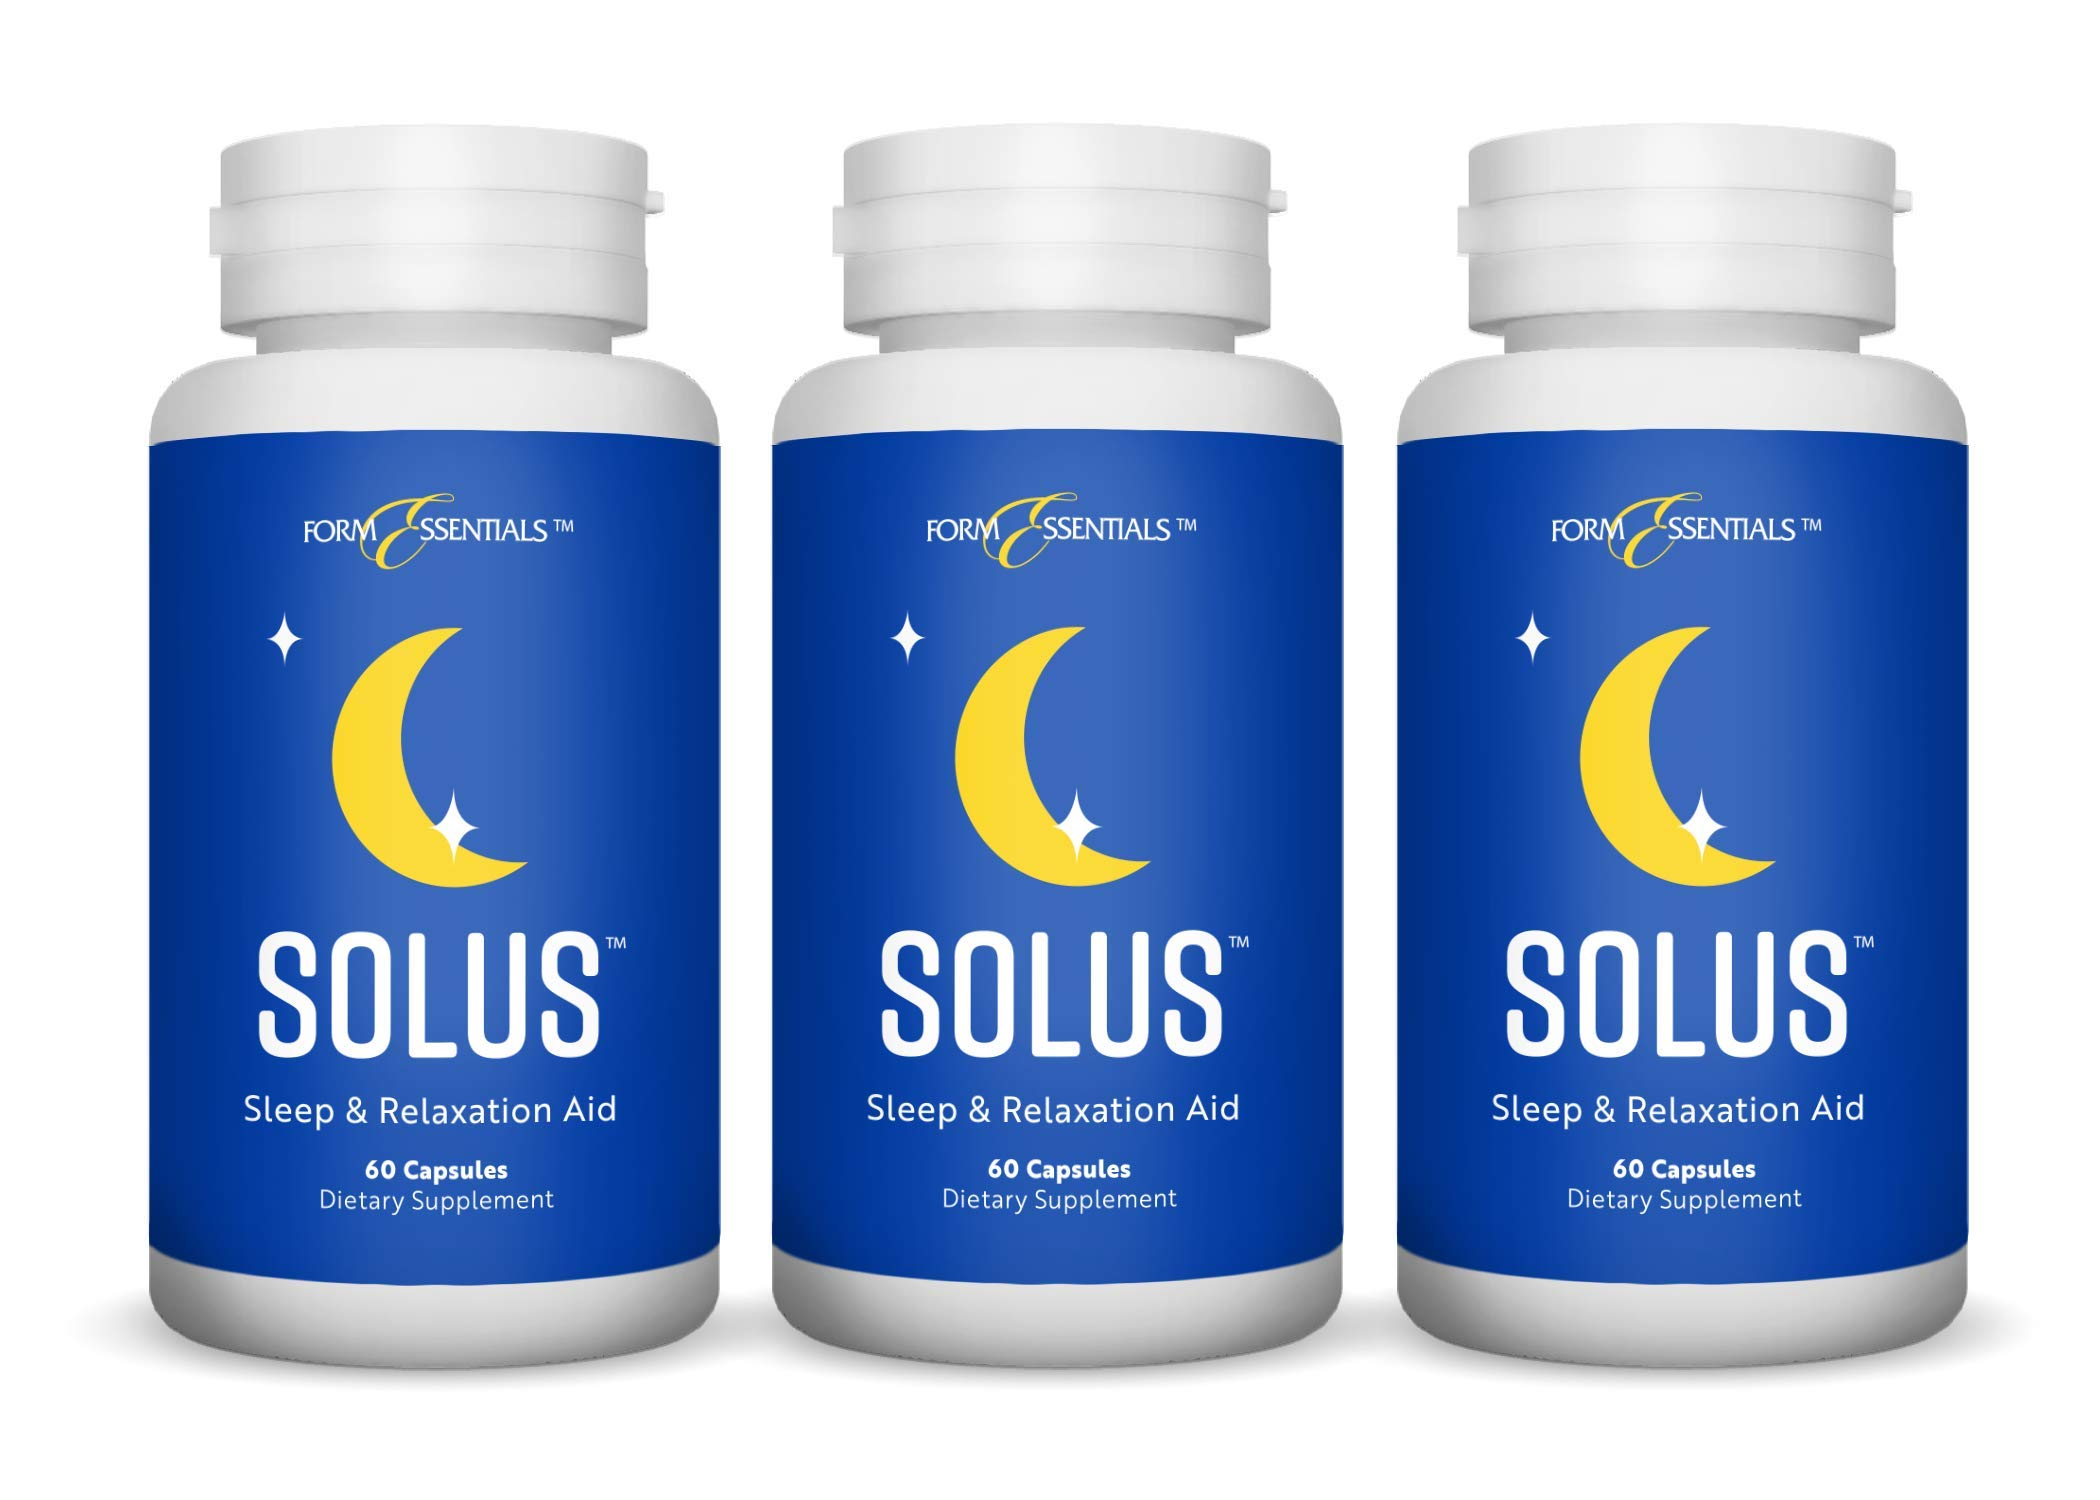 Form Essentials, Solus, All Natural Herbal Sleep Aid and Relaxation Supplement with L-Tryptophan, Melatonin, Chamomile, Valerian, 5-HTP, 60 Capsules (3 Pack)